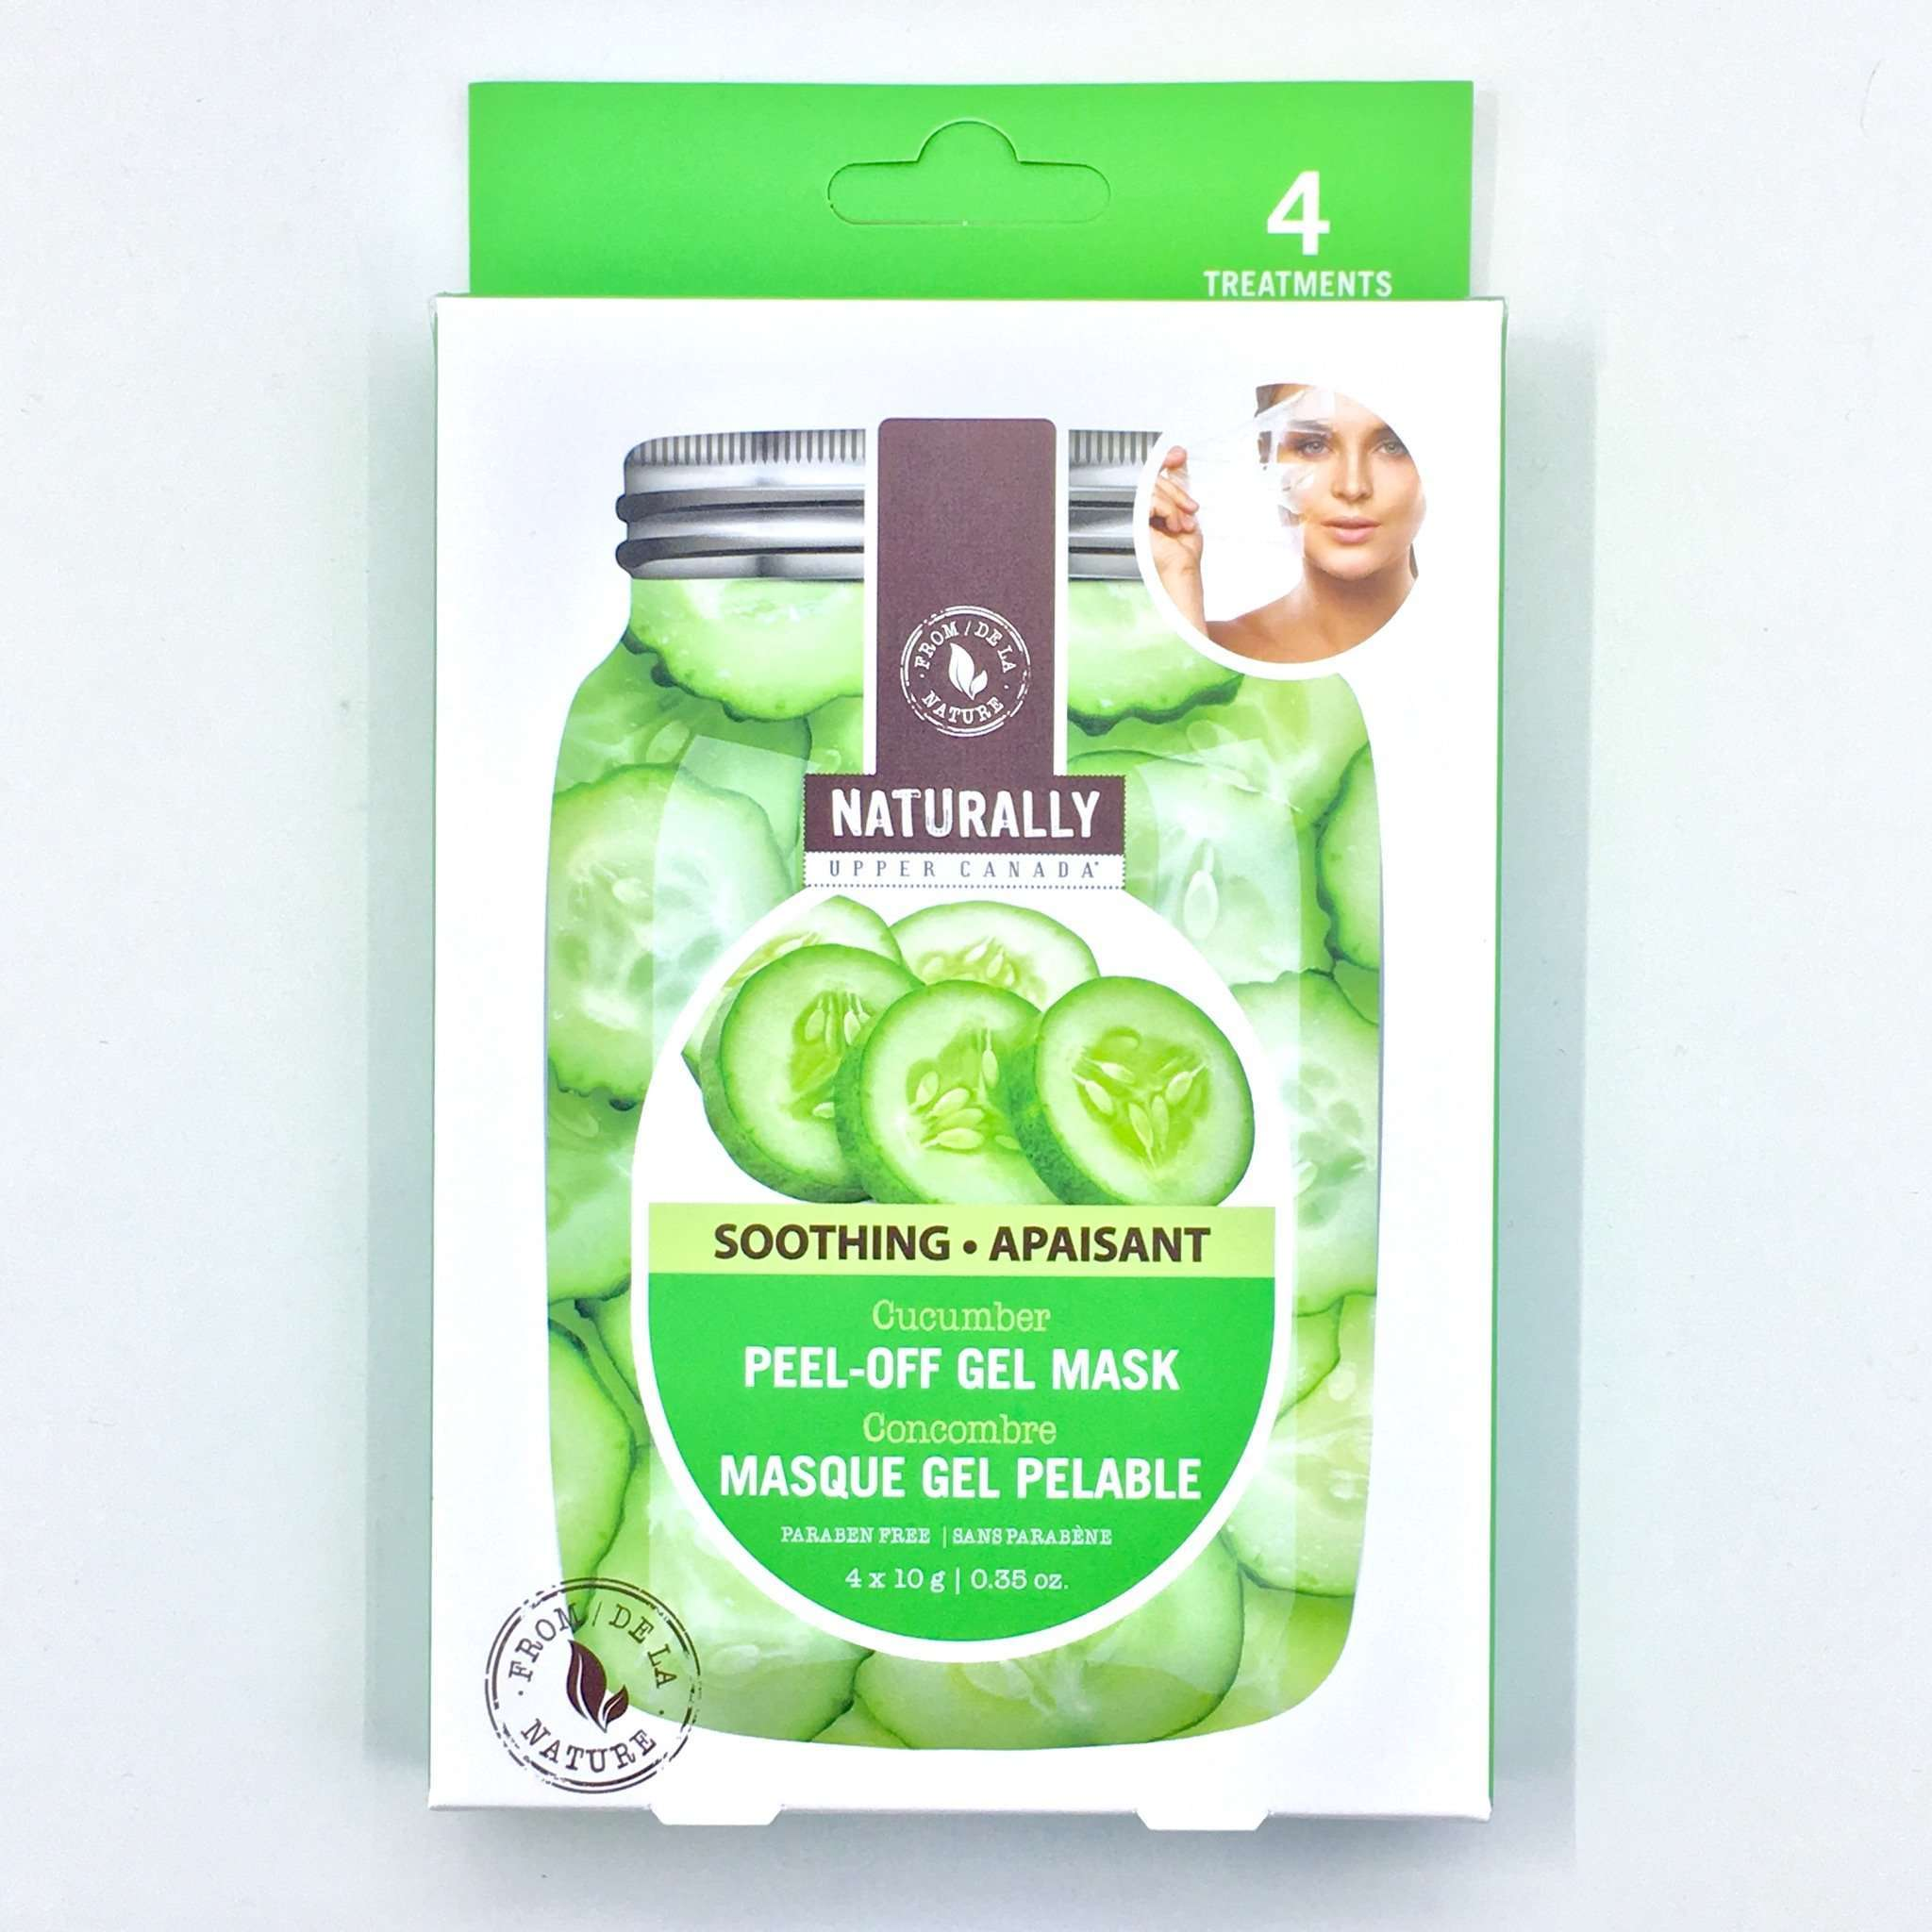 NATURALLY UPPER CANADA PEEL OFF MASK CUCUMBER, HEALTH AND BEAUTY, Styles For Home Garden & Living, Styles For Home Garden & Living